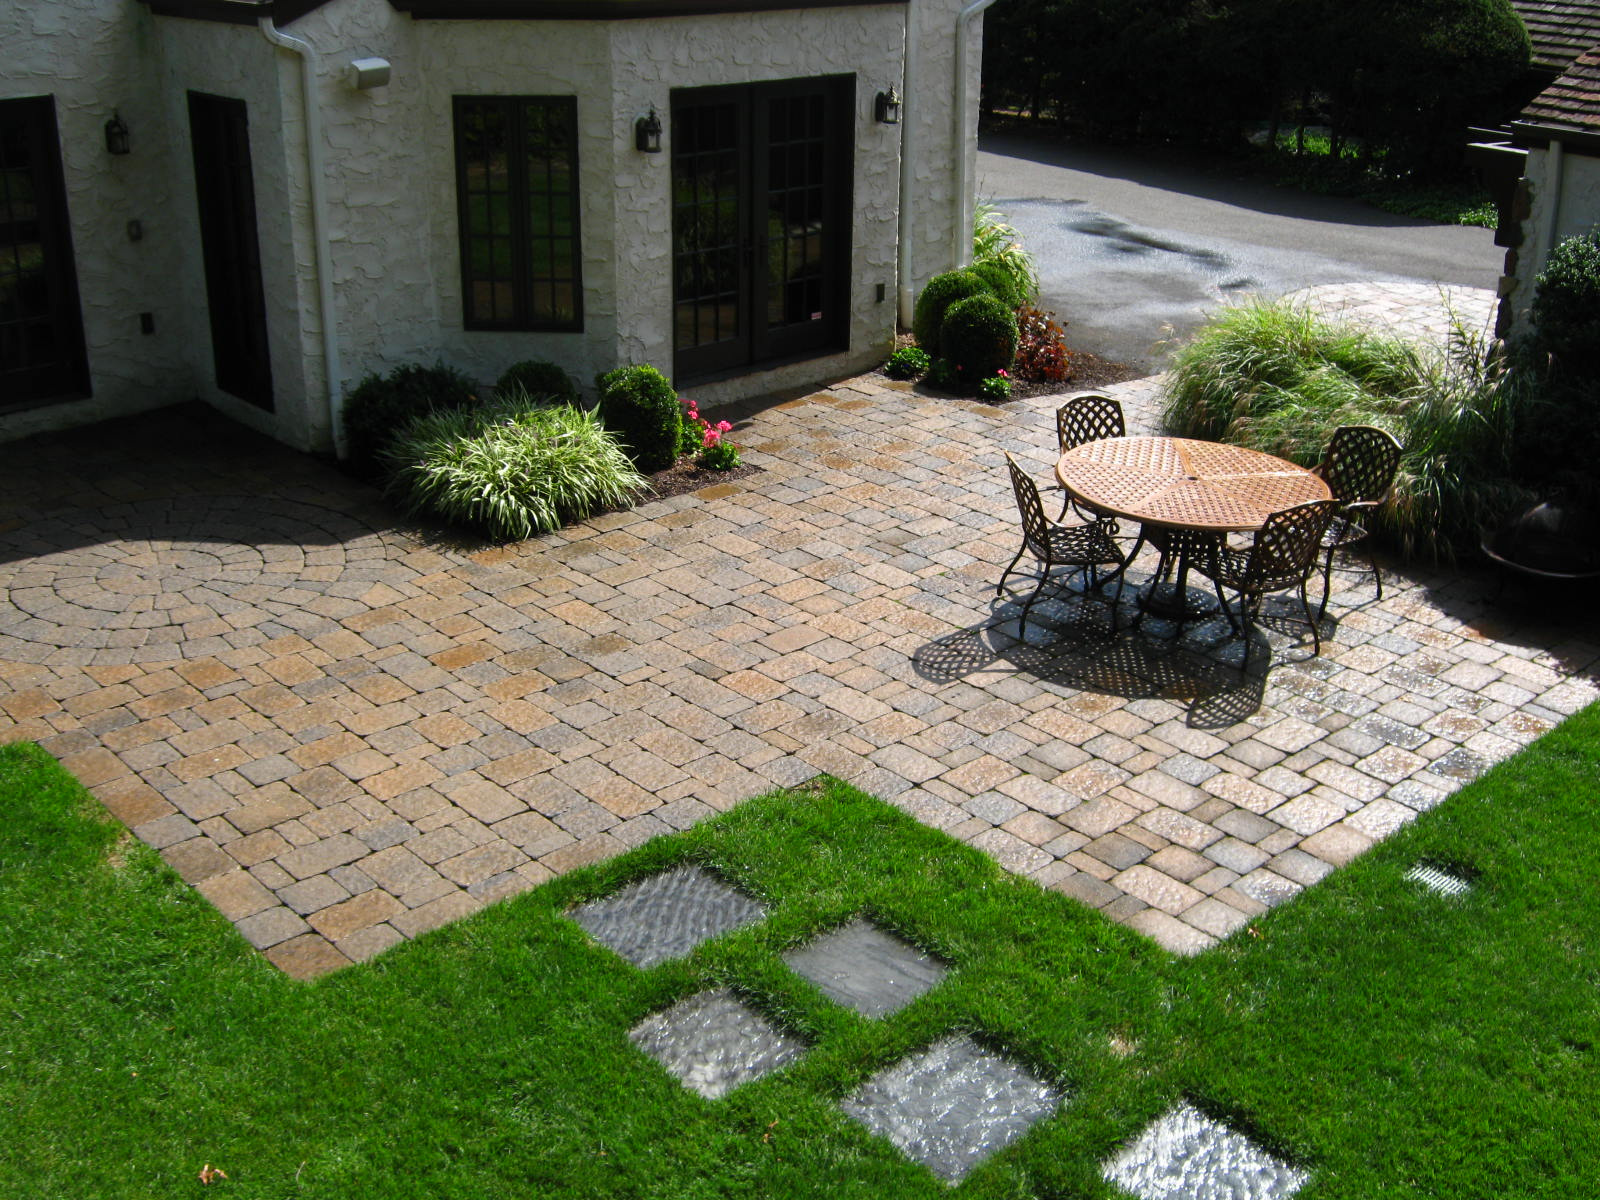 Patio designs bergen county nj for Patio designs